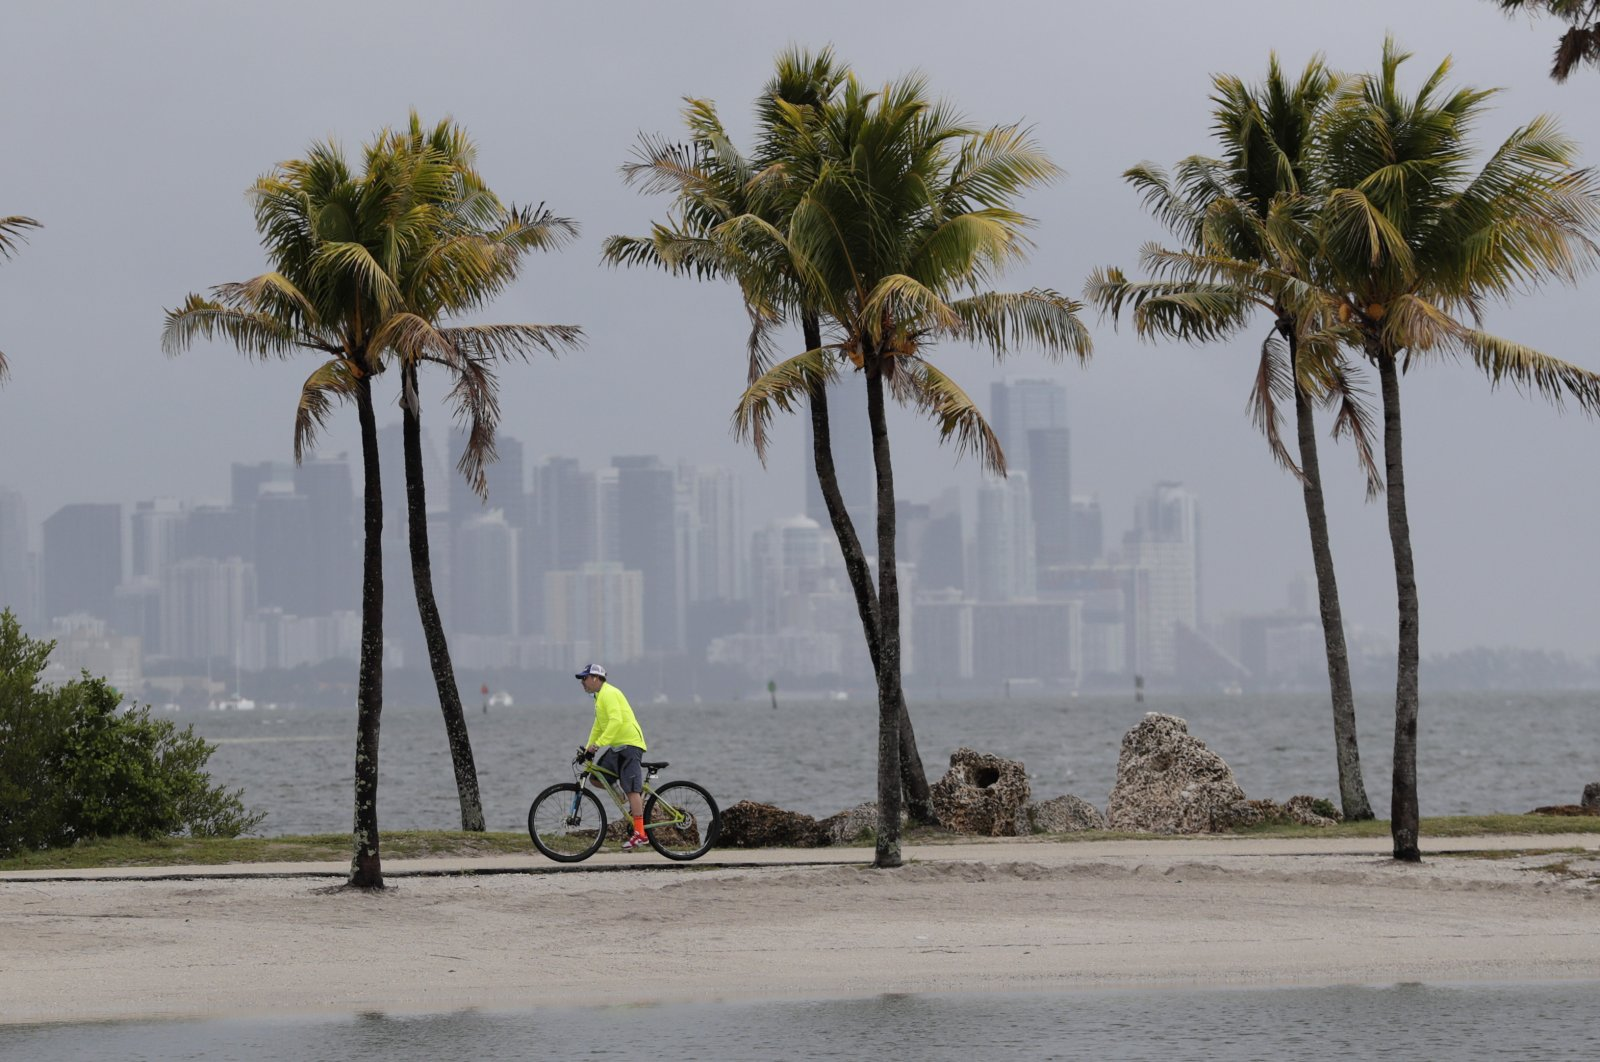 The Miami skyline is shrouded in clouds as a cyclist rides along Biscayne Bay at Matheson Hammock Park, Miami, May, 15, 2020. (AP Photo)